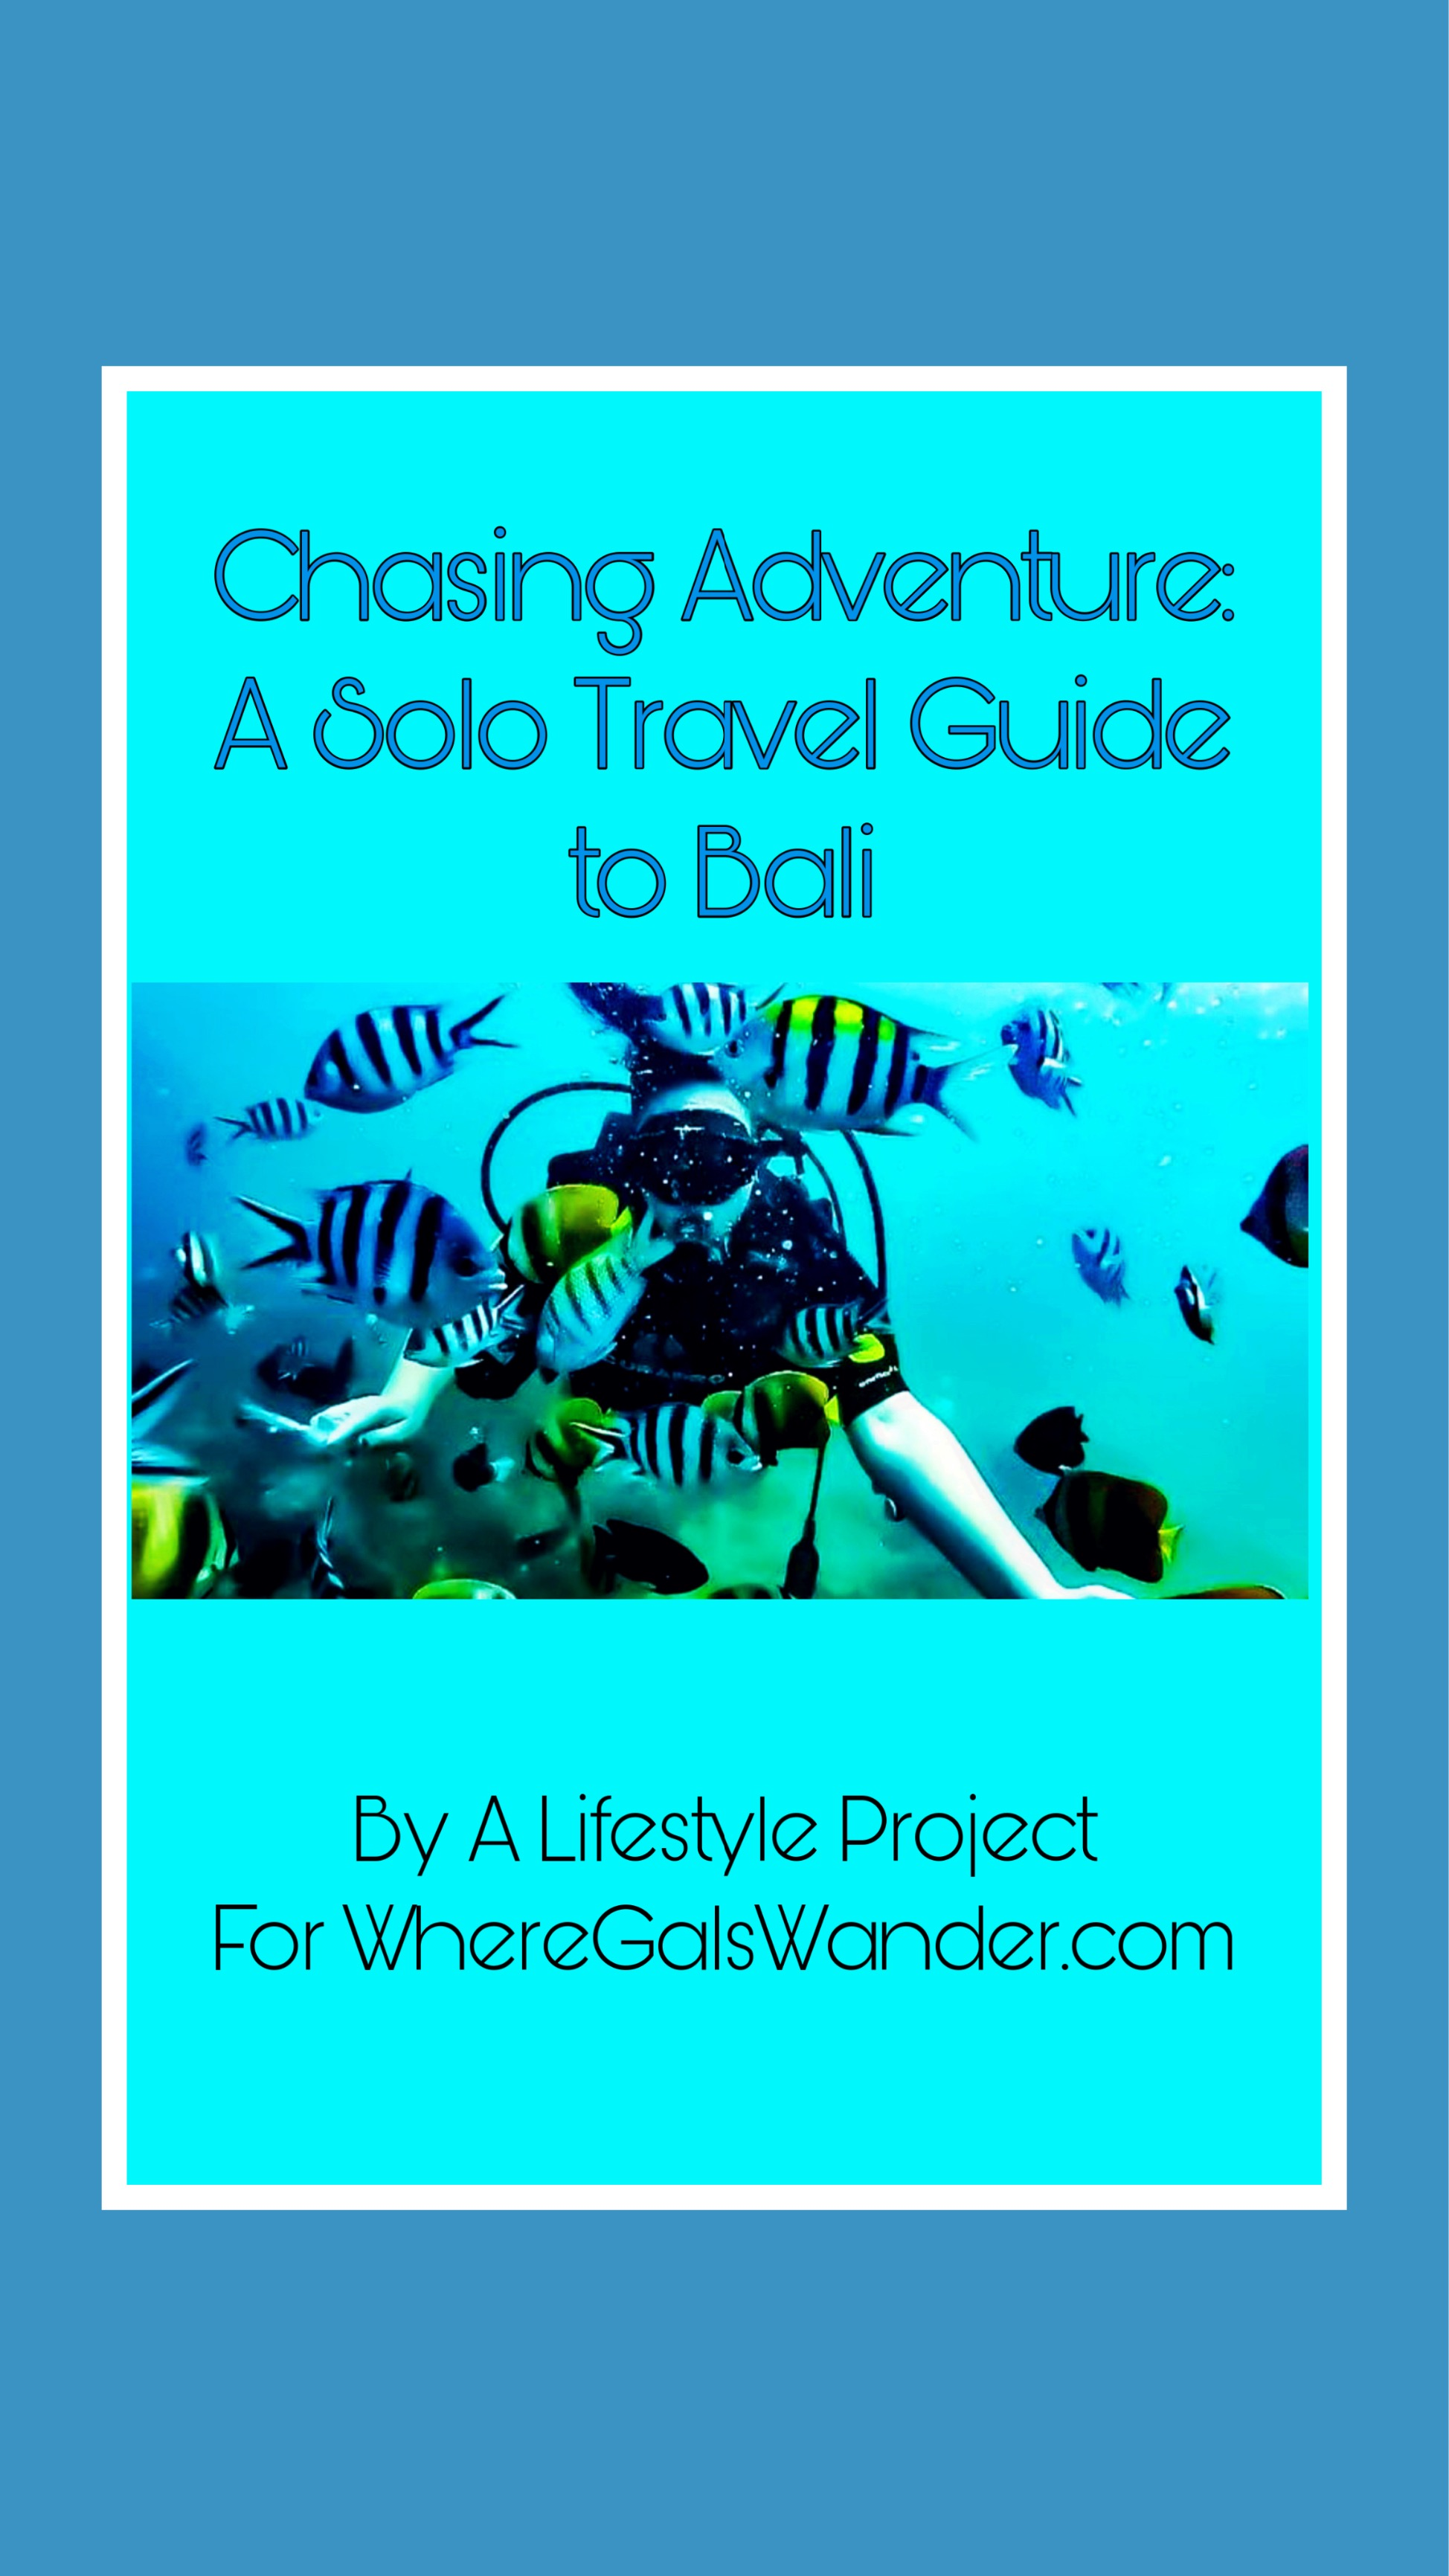 Chasing  Adventure: A Solo Travel Guide to Bali, by ALifestyleProject for WhereGalsWander.com